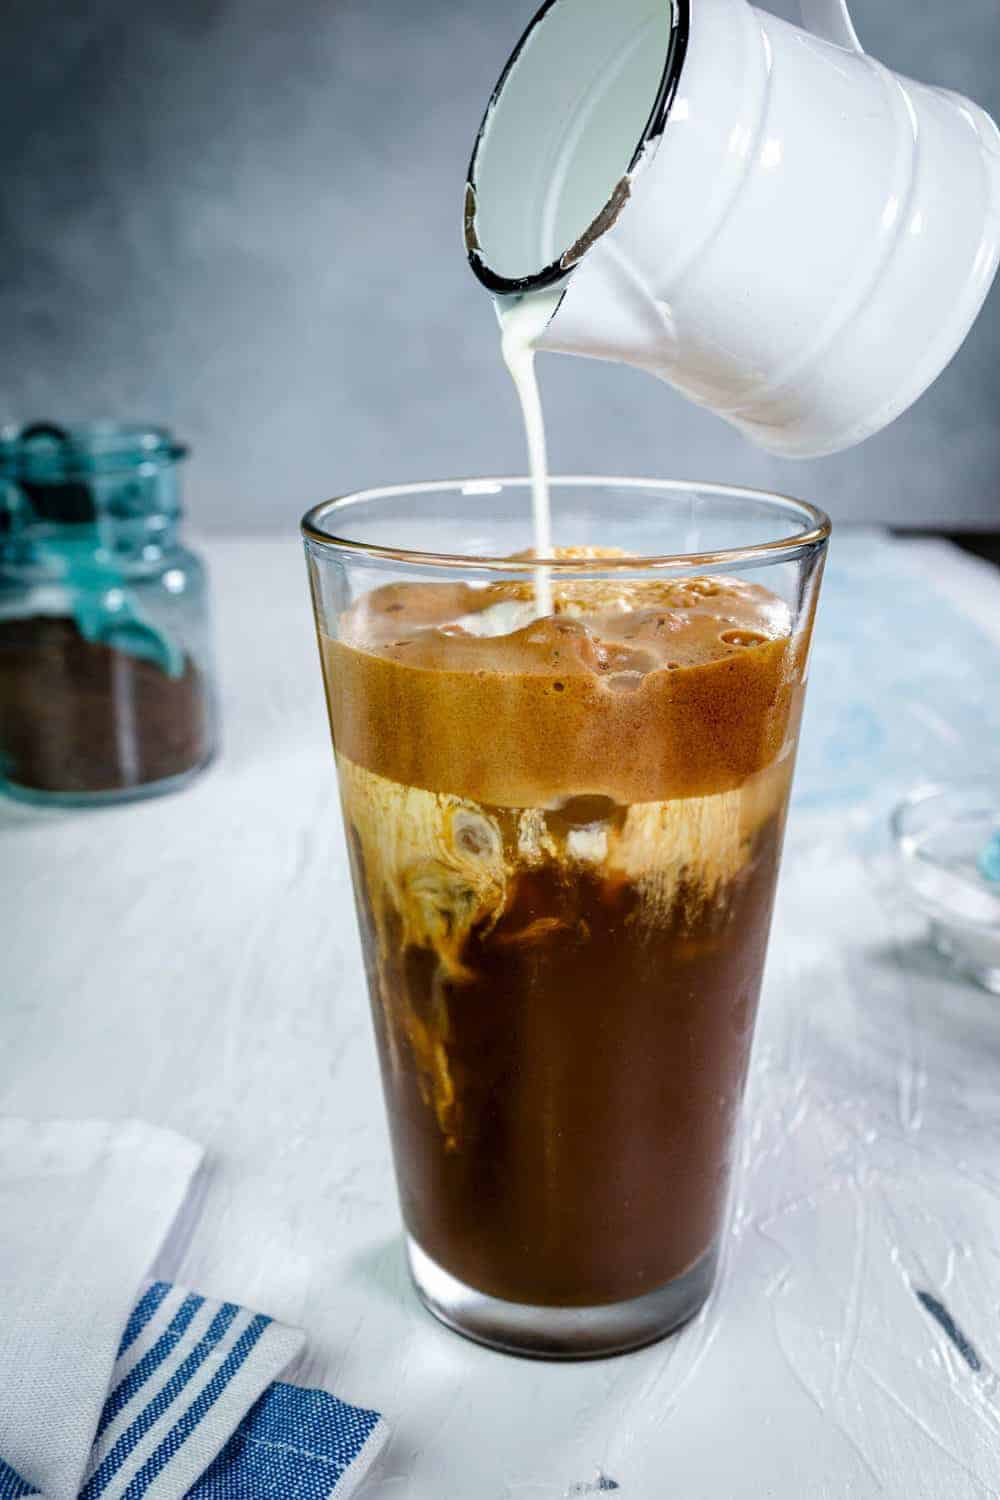 Pouring milk over a glass with Greek frappe.